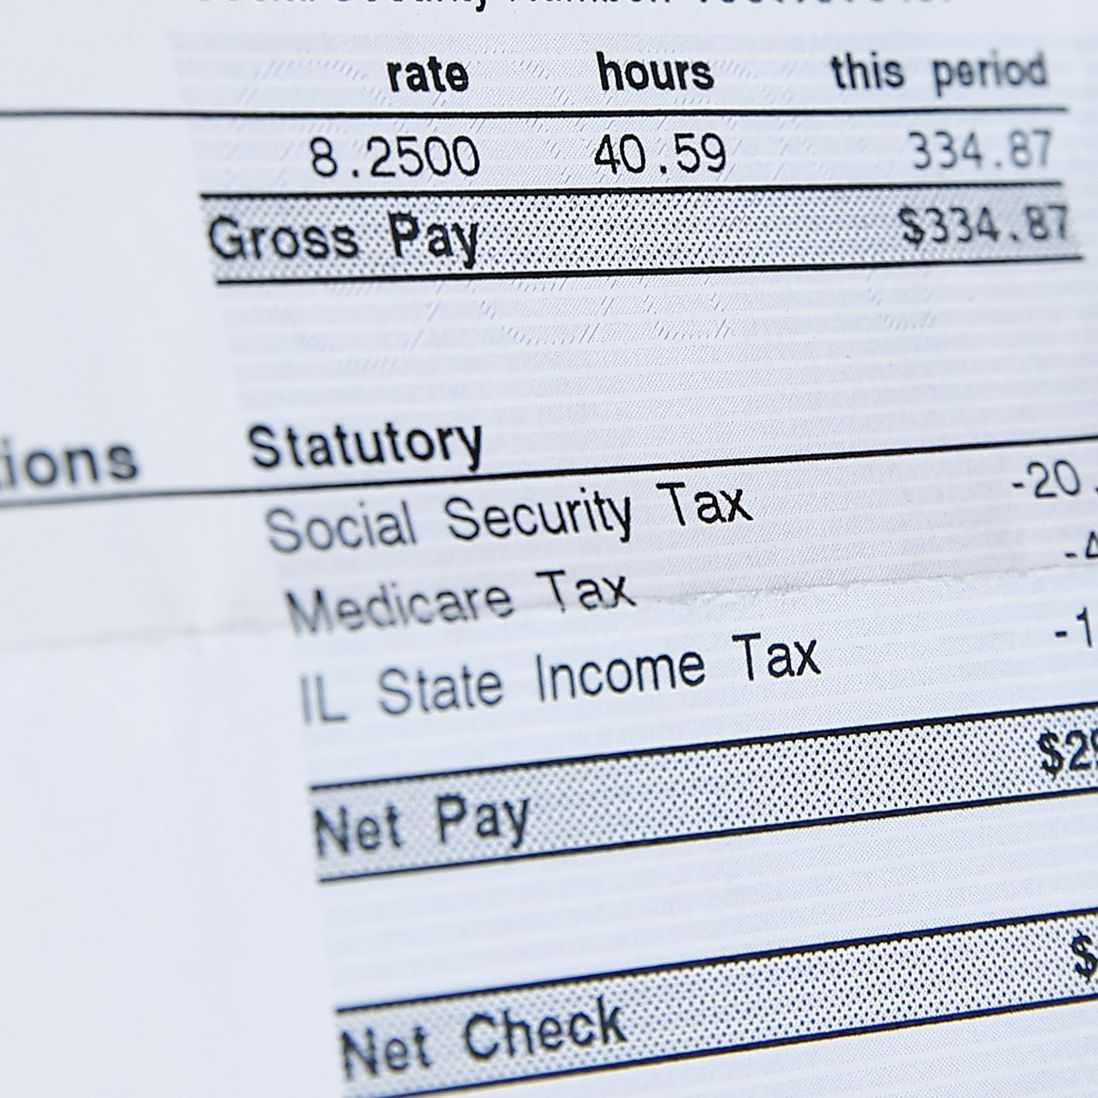 Federal Insurance Contributions Act (FICA)